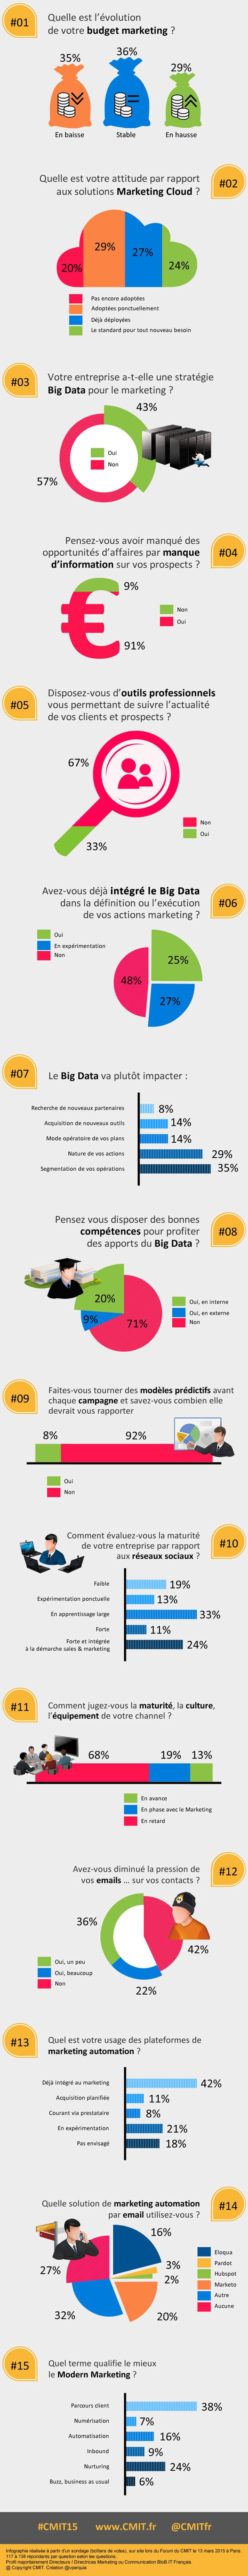 Infographie : Big Data & Performance Marketing et nouveaux outils du marketing moderne